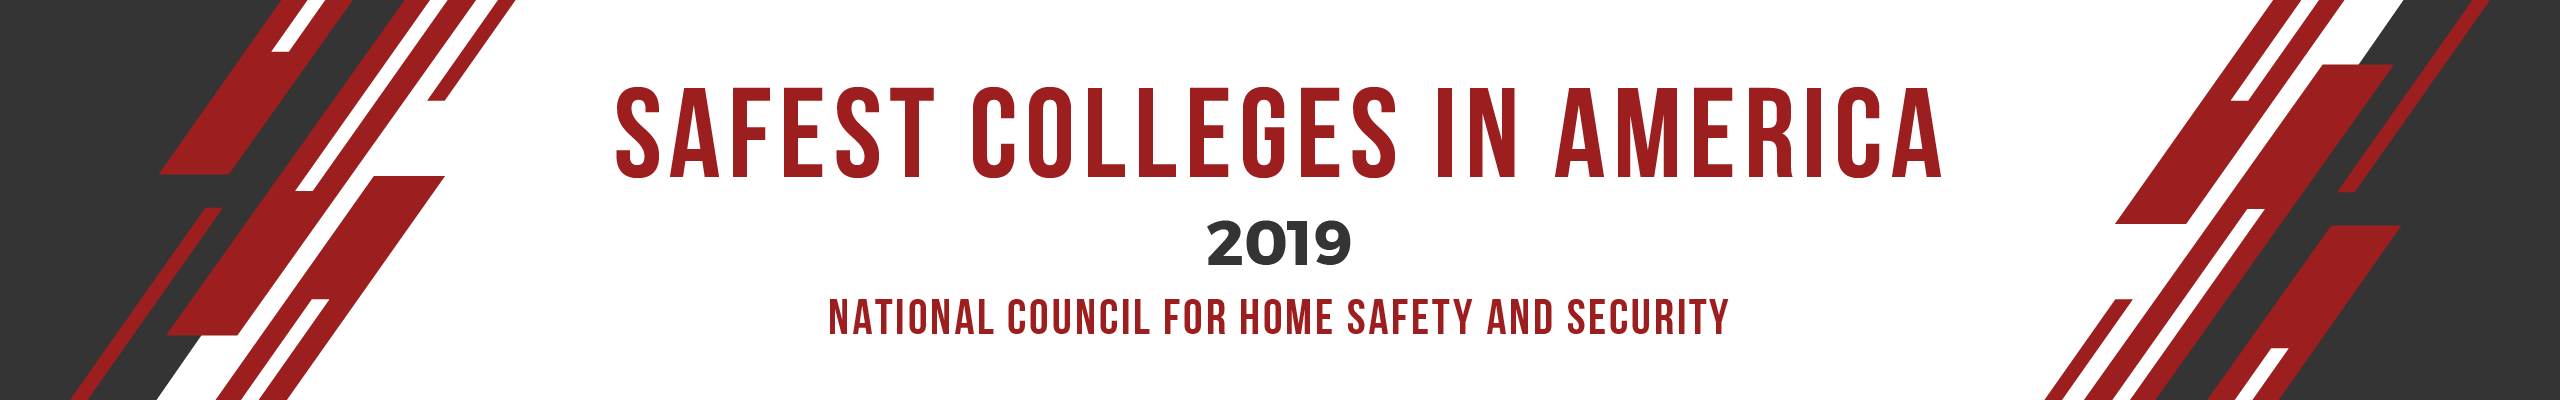 Safest Colleges in America - 2019 | National Council For